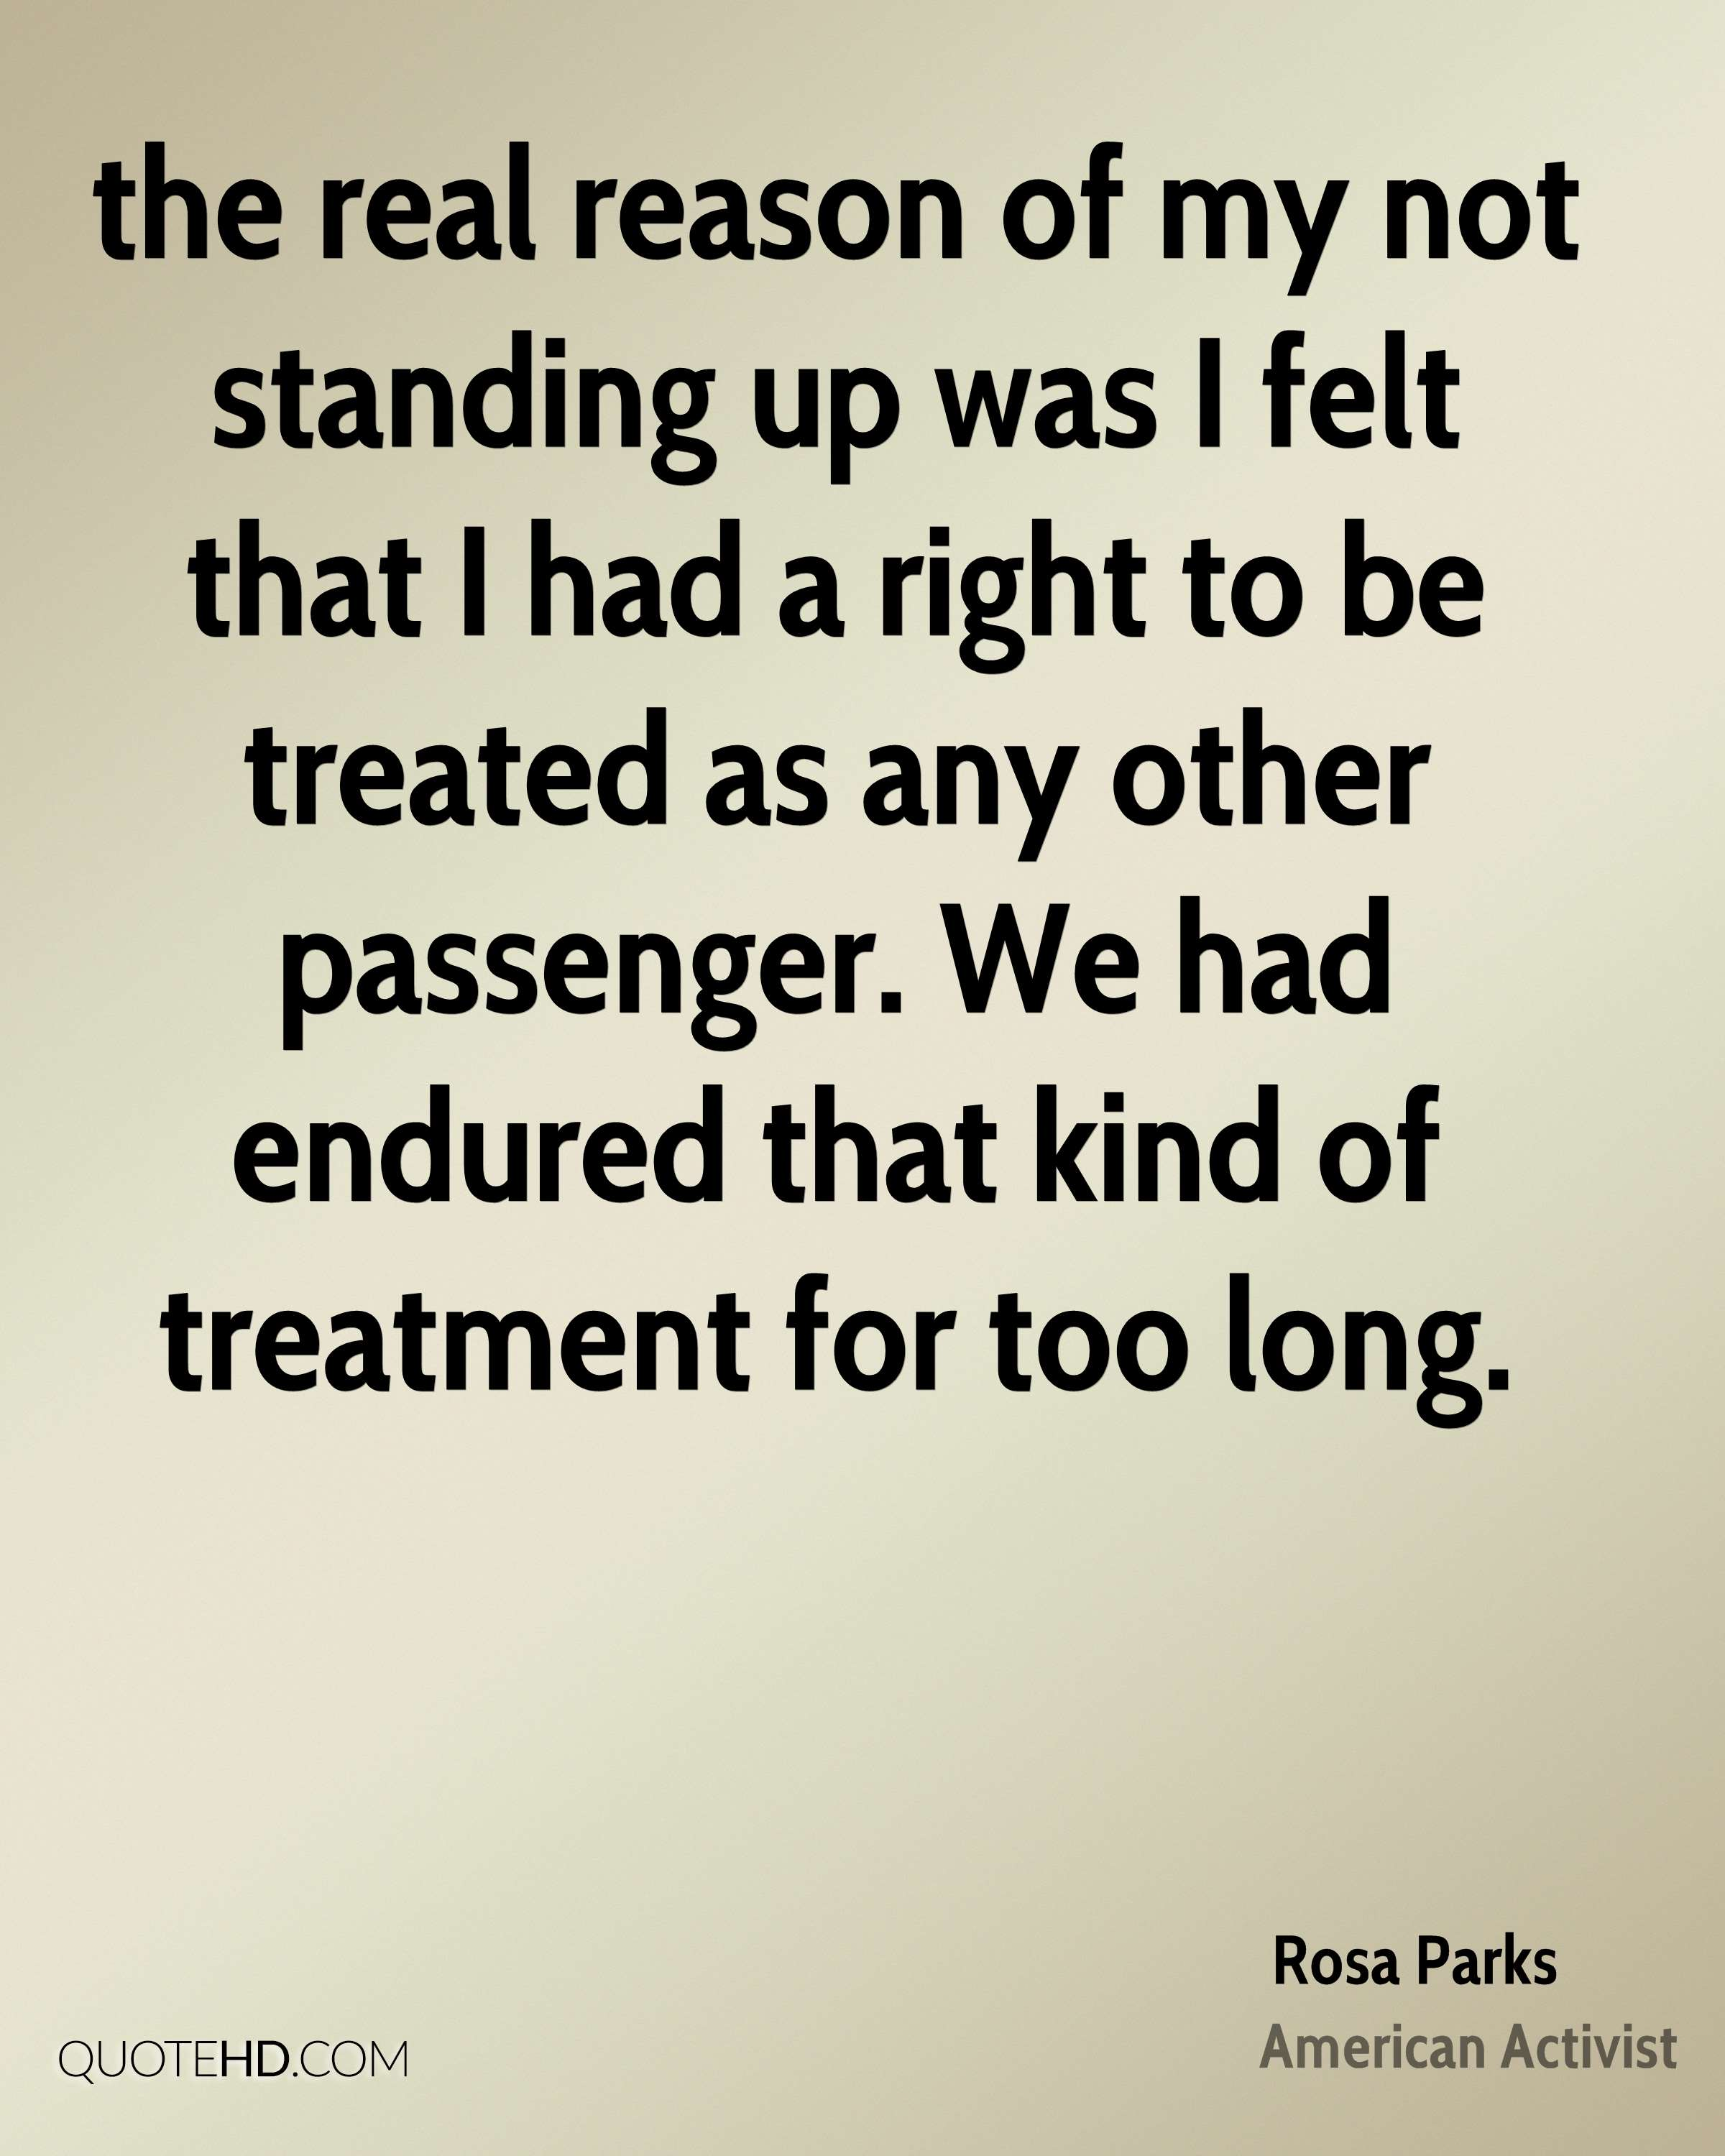 the real reason of my not standing up was I felt that I had a right to be treated as any other passenger. We had endured that kind of treatment for too long.